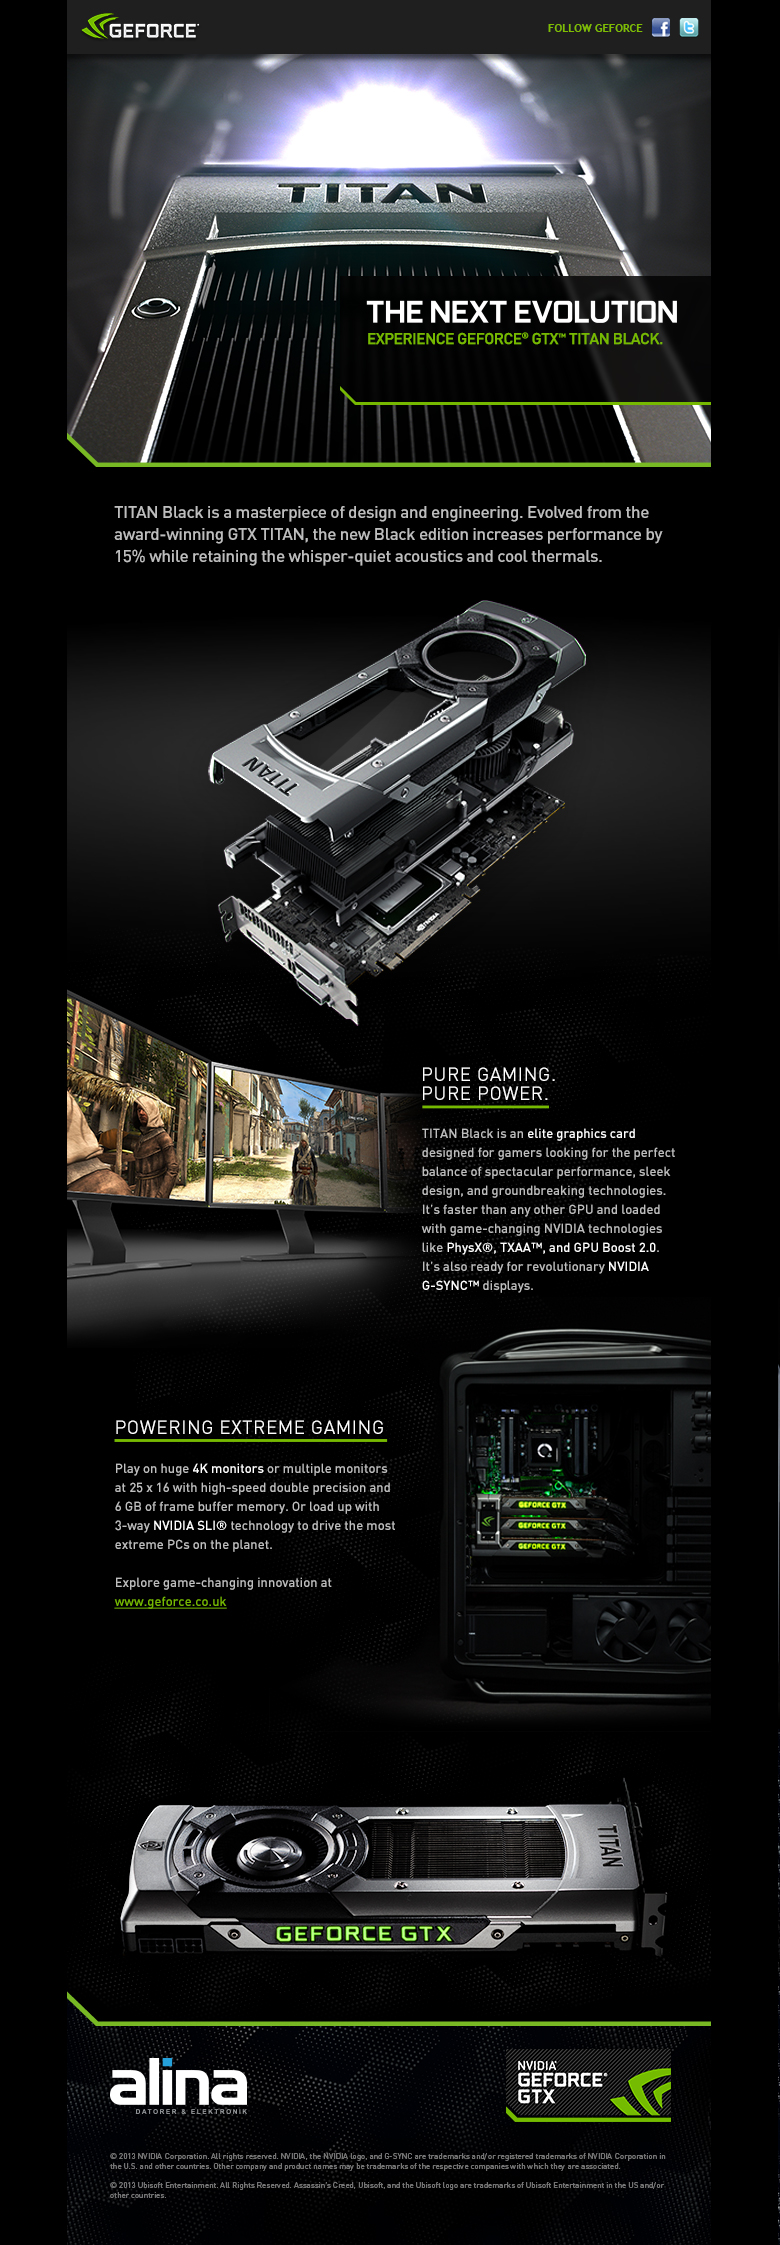 Introducing GeForce GTX Titan Black Edition